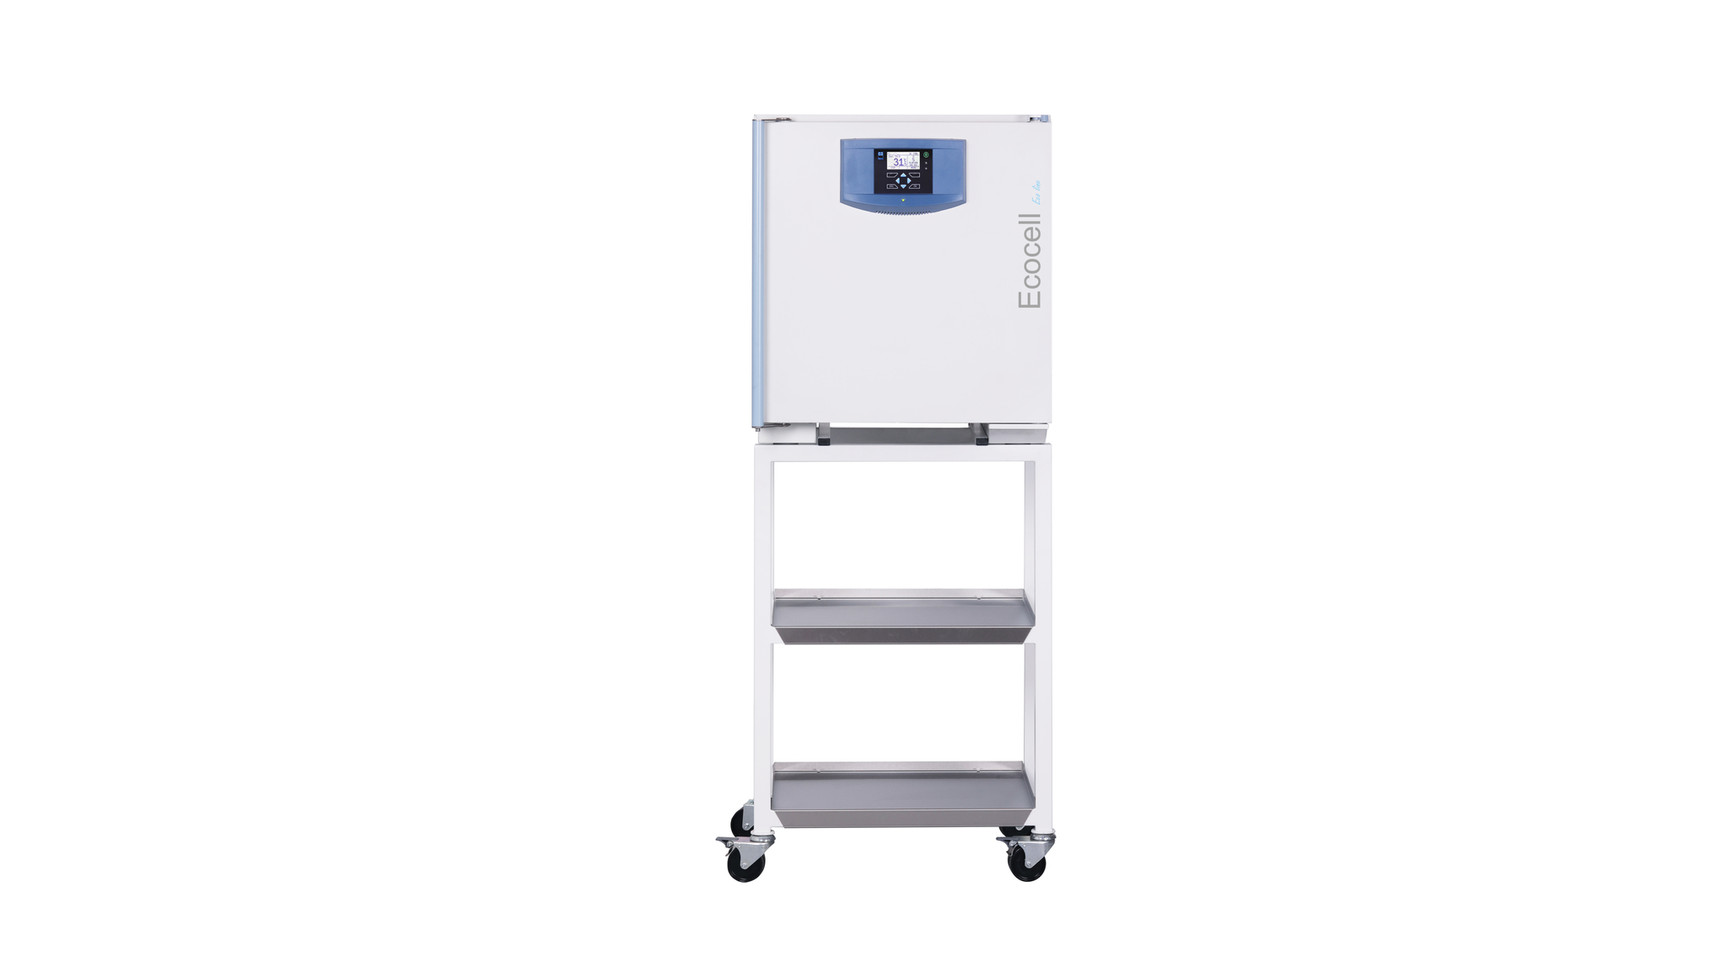 Ecocell 55 (2 ft3)